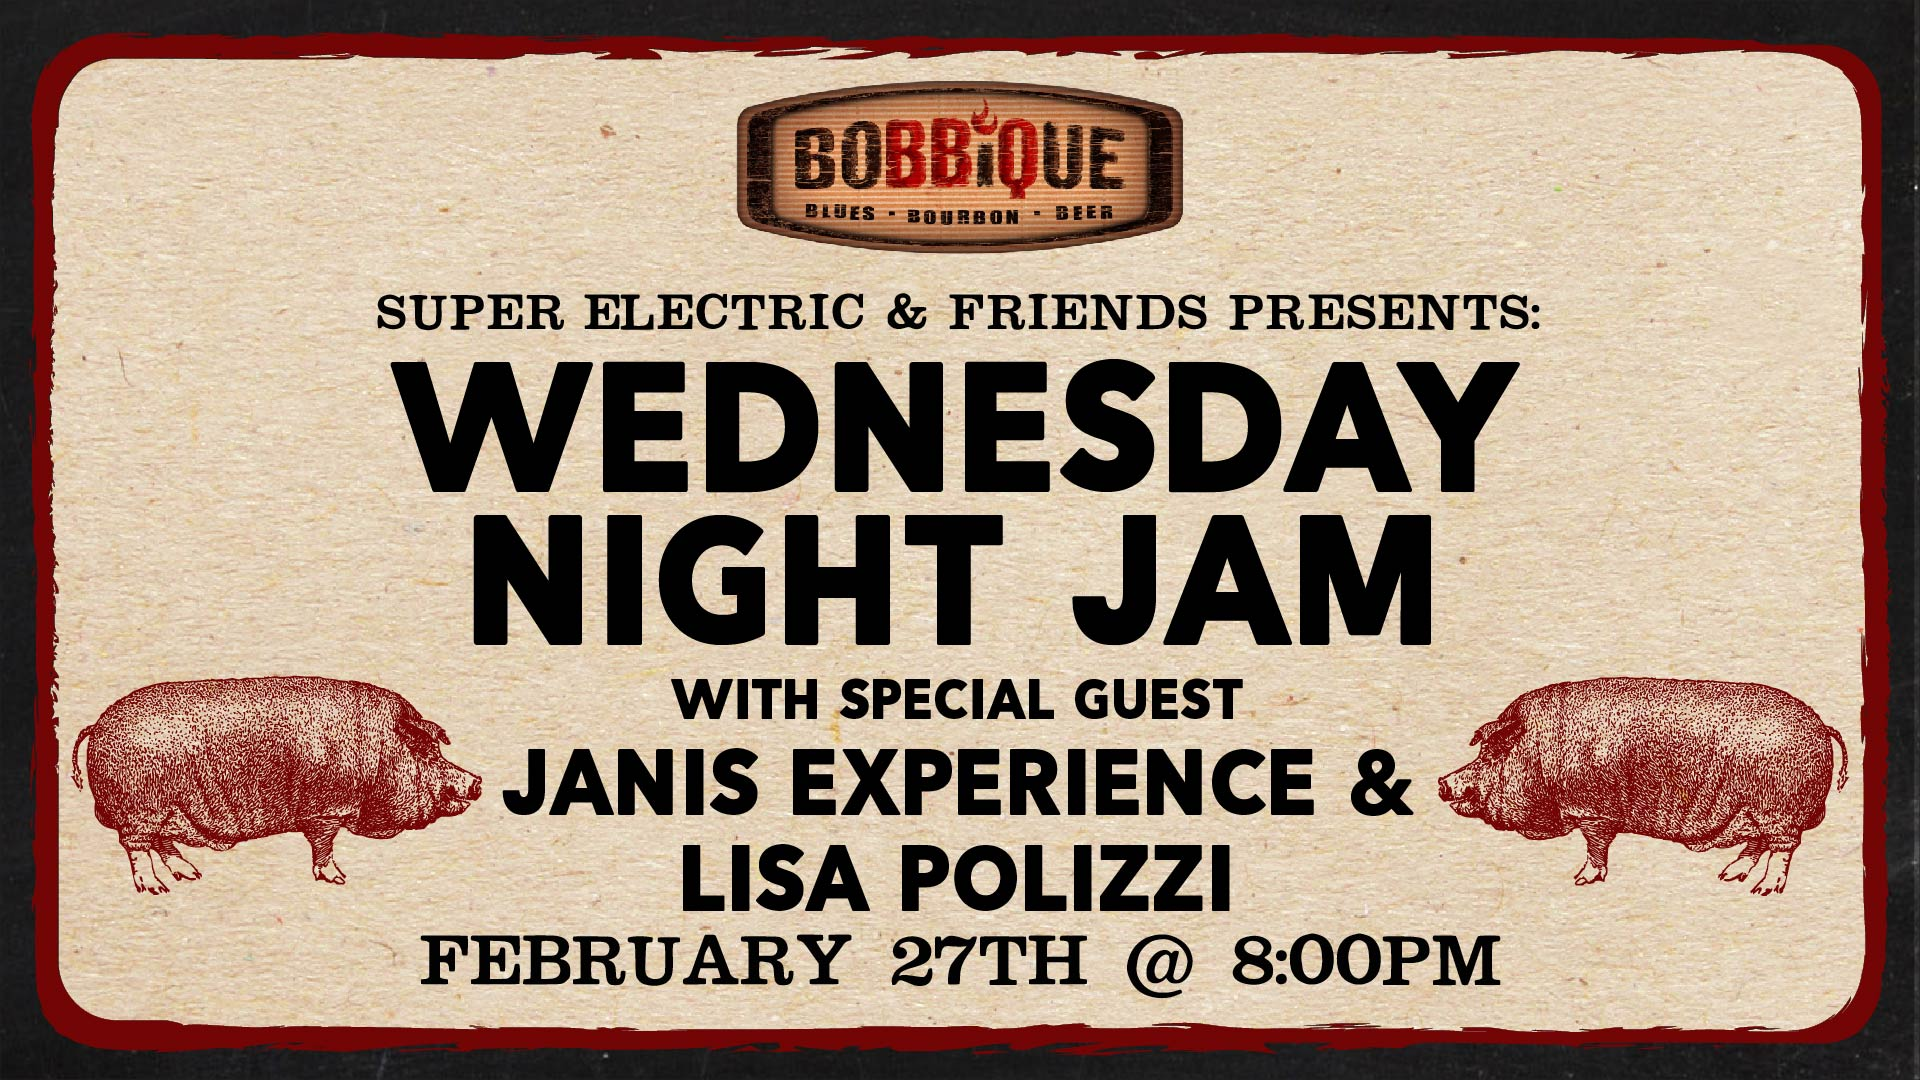 Wednesday Night Jam with Super Electric and Friends